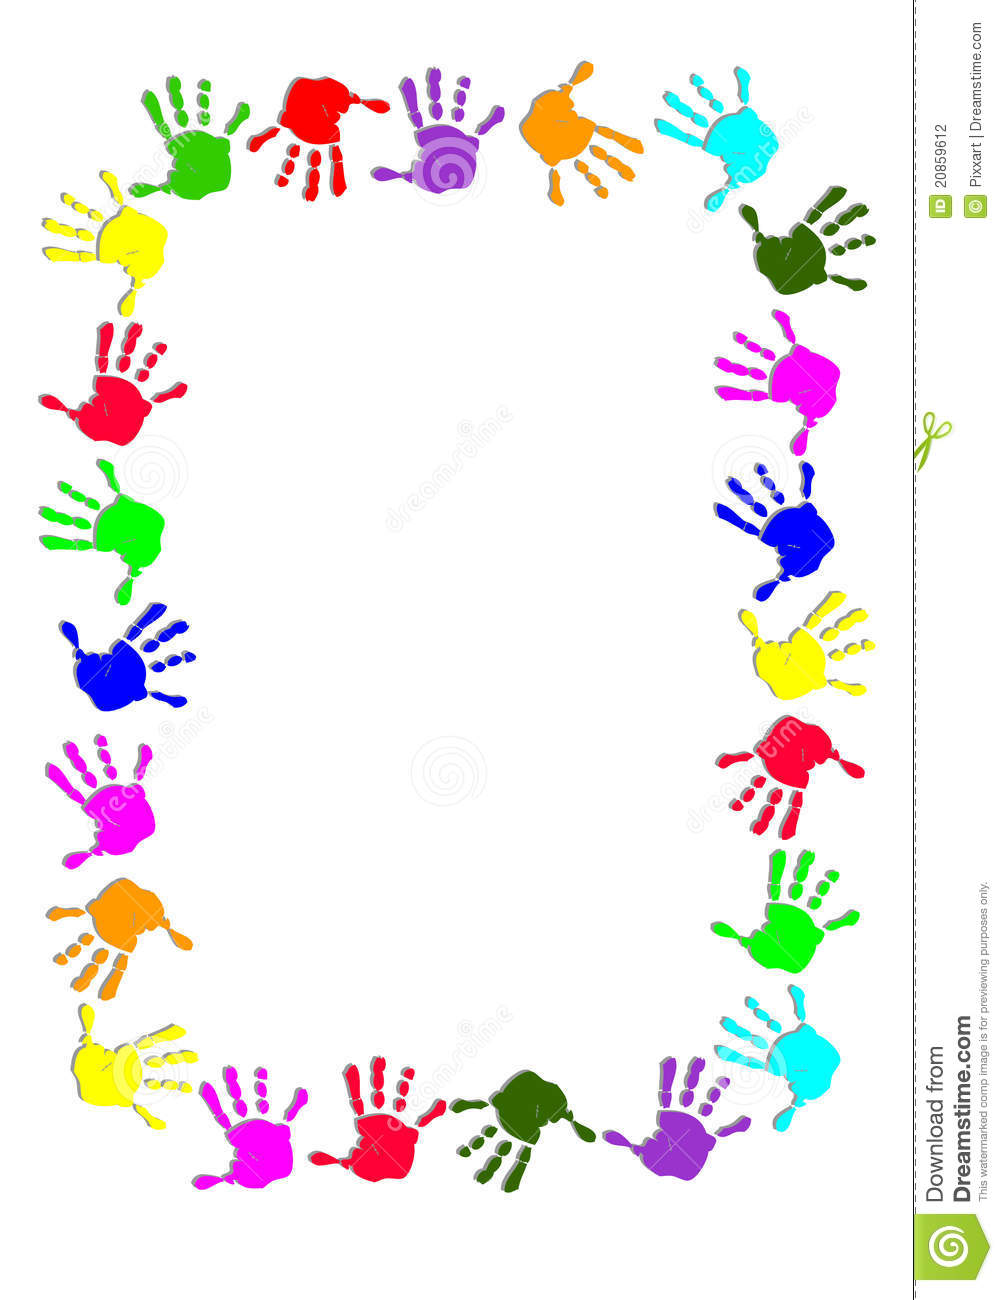 Handprint clipart border Handprint Border Handprint clipart Collection